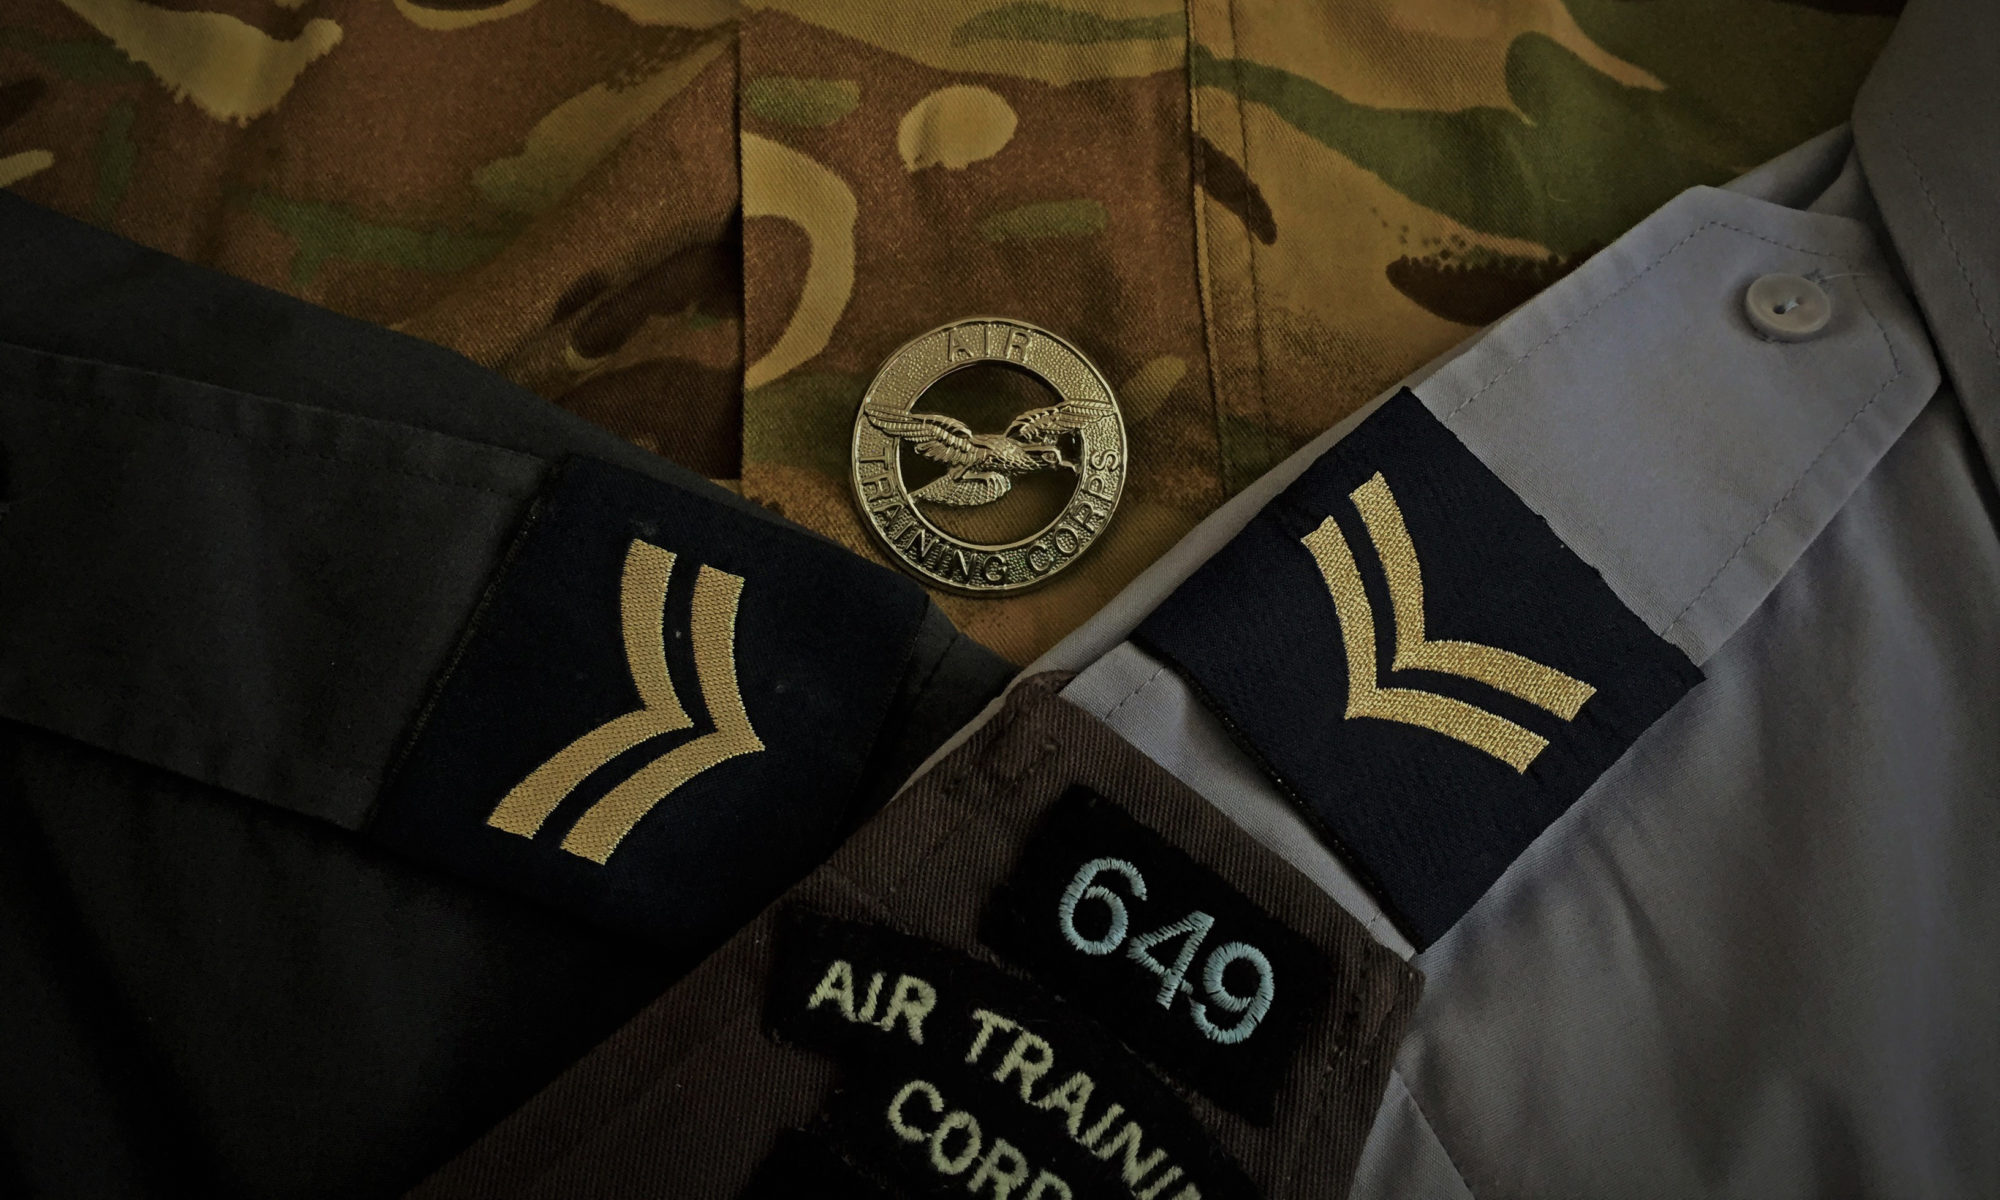 649 (Dursley) Sqn ATC